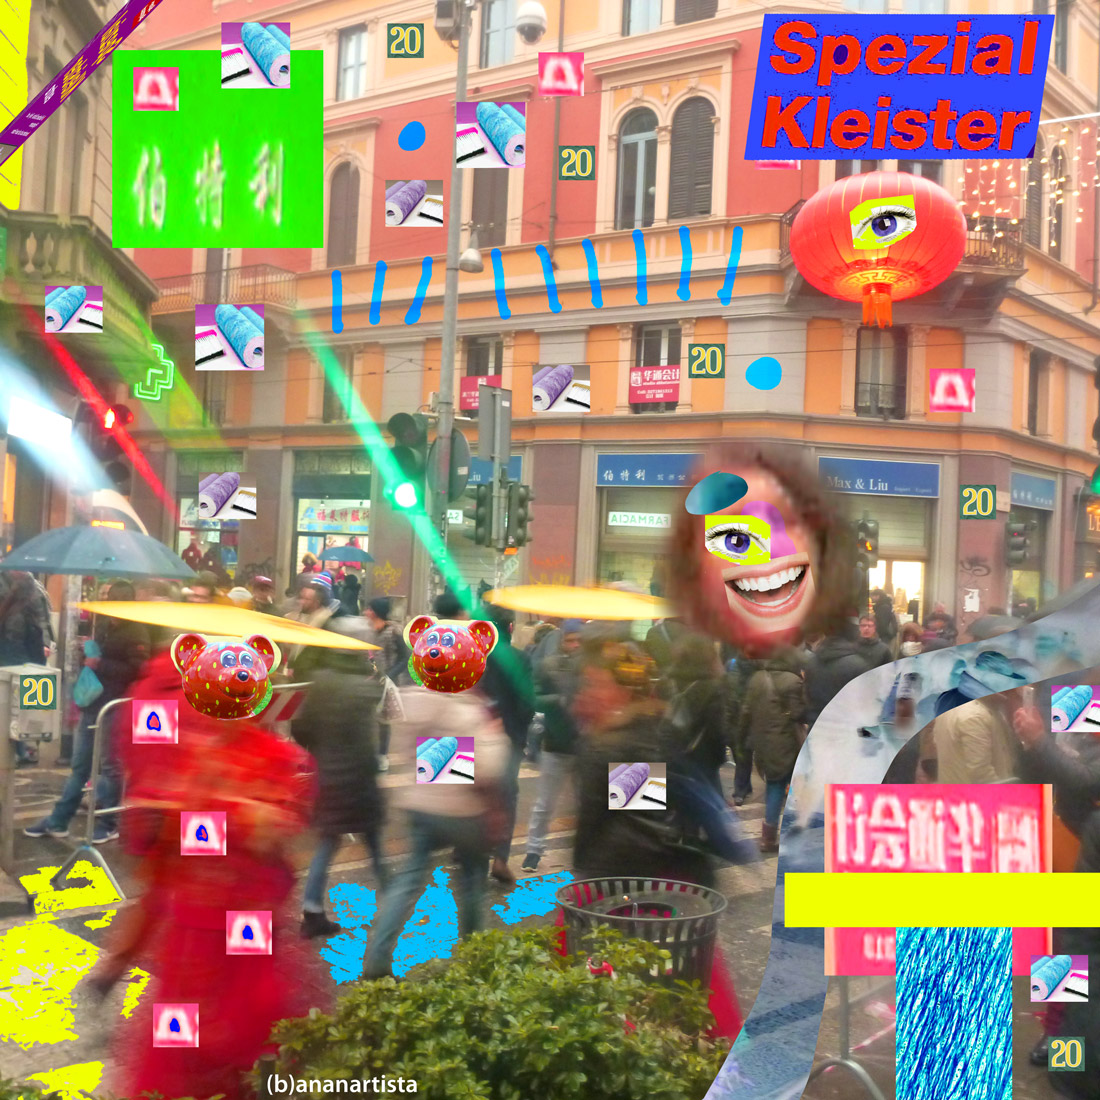 spezial kleister: collage photography by (b)ananartista sbuff